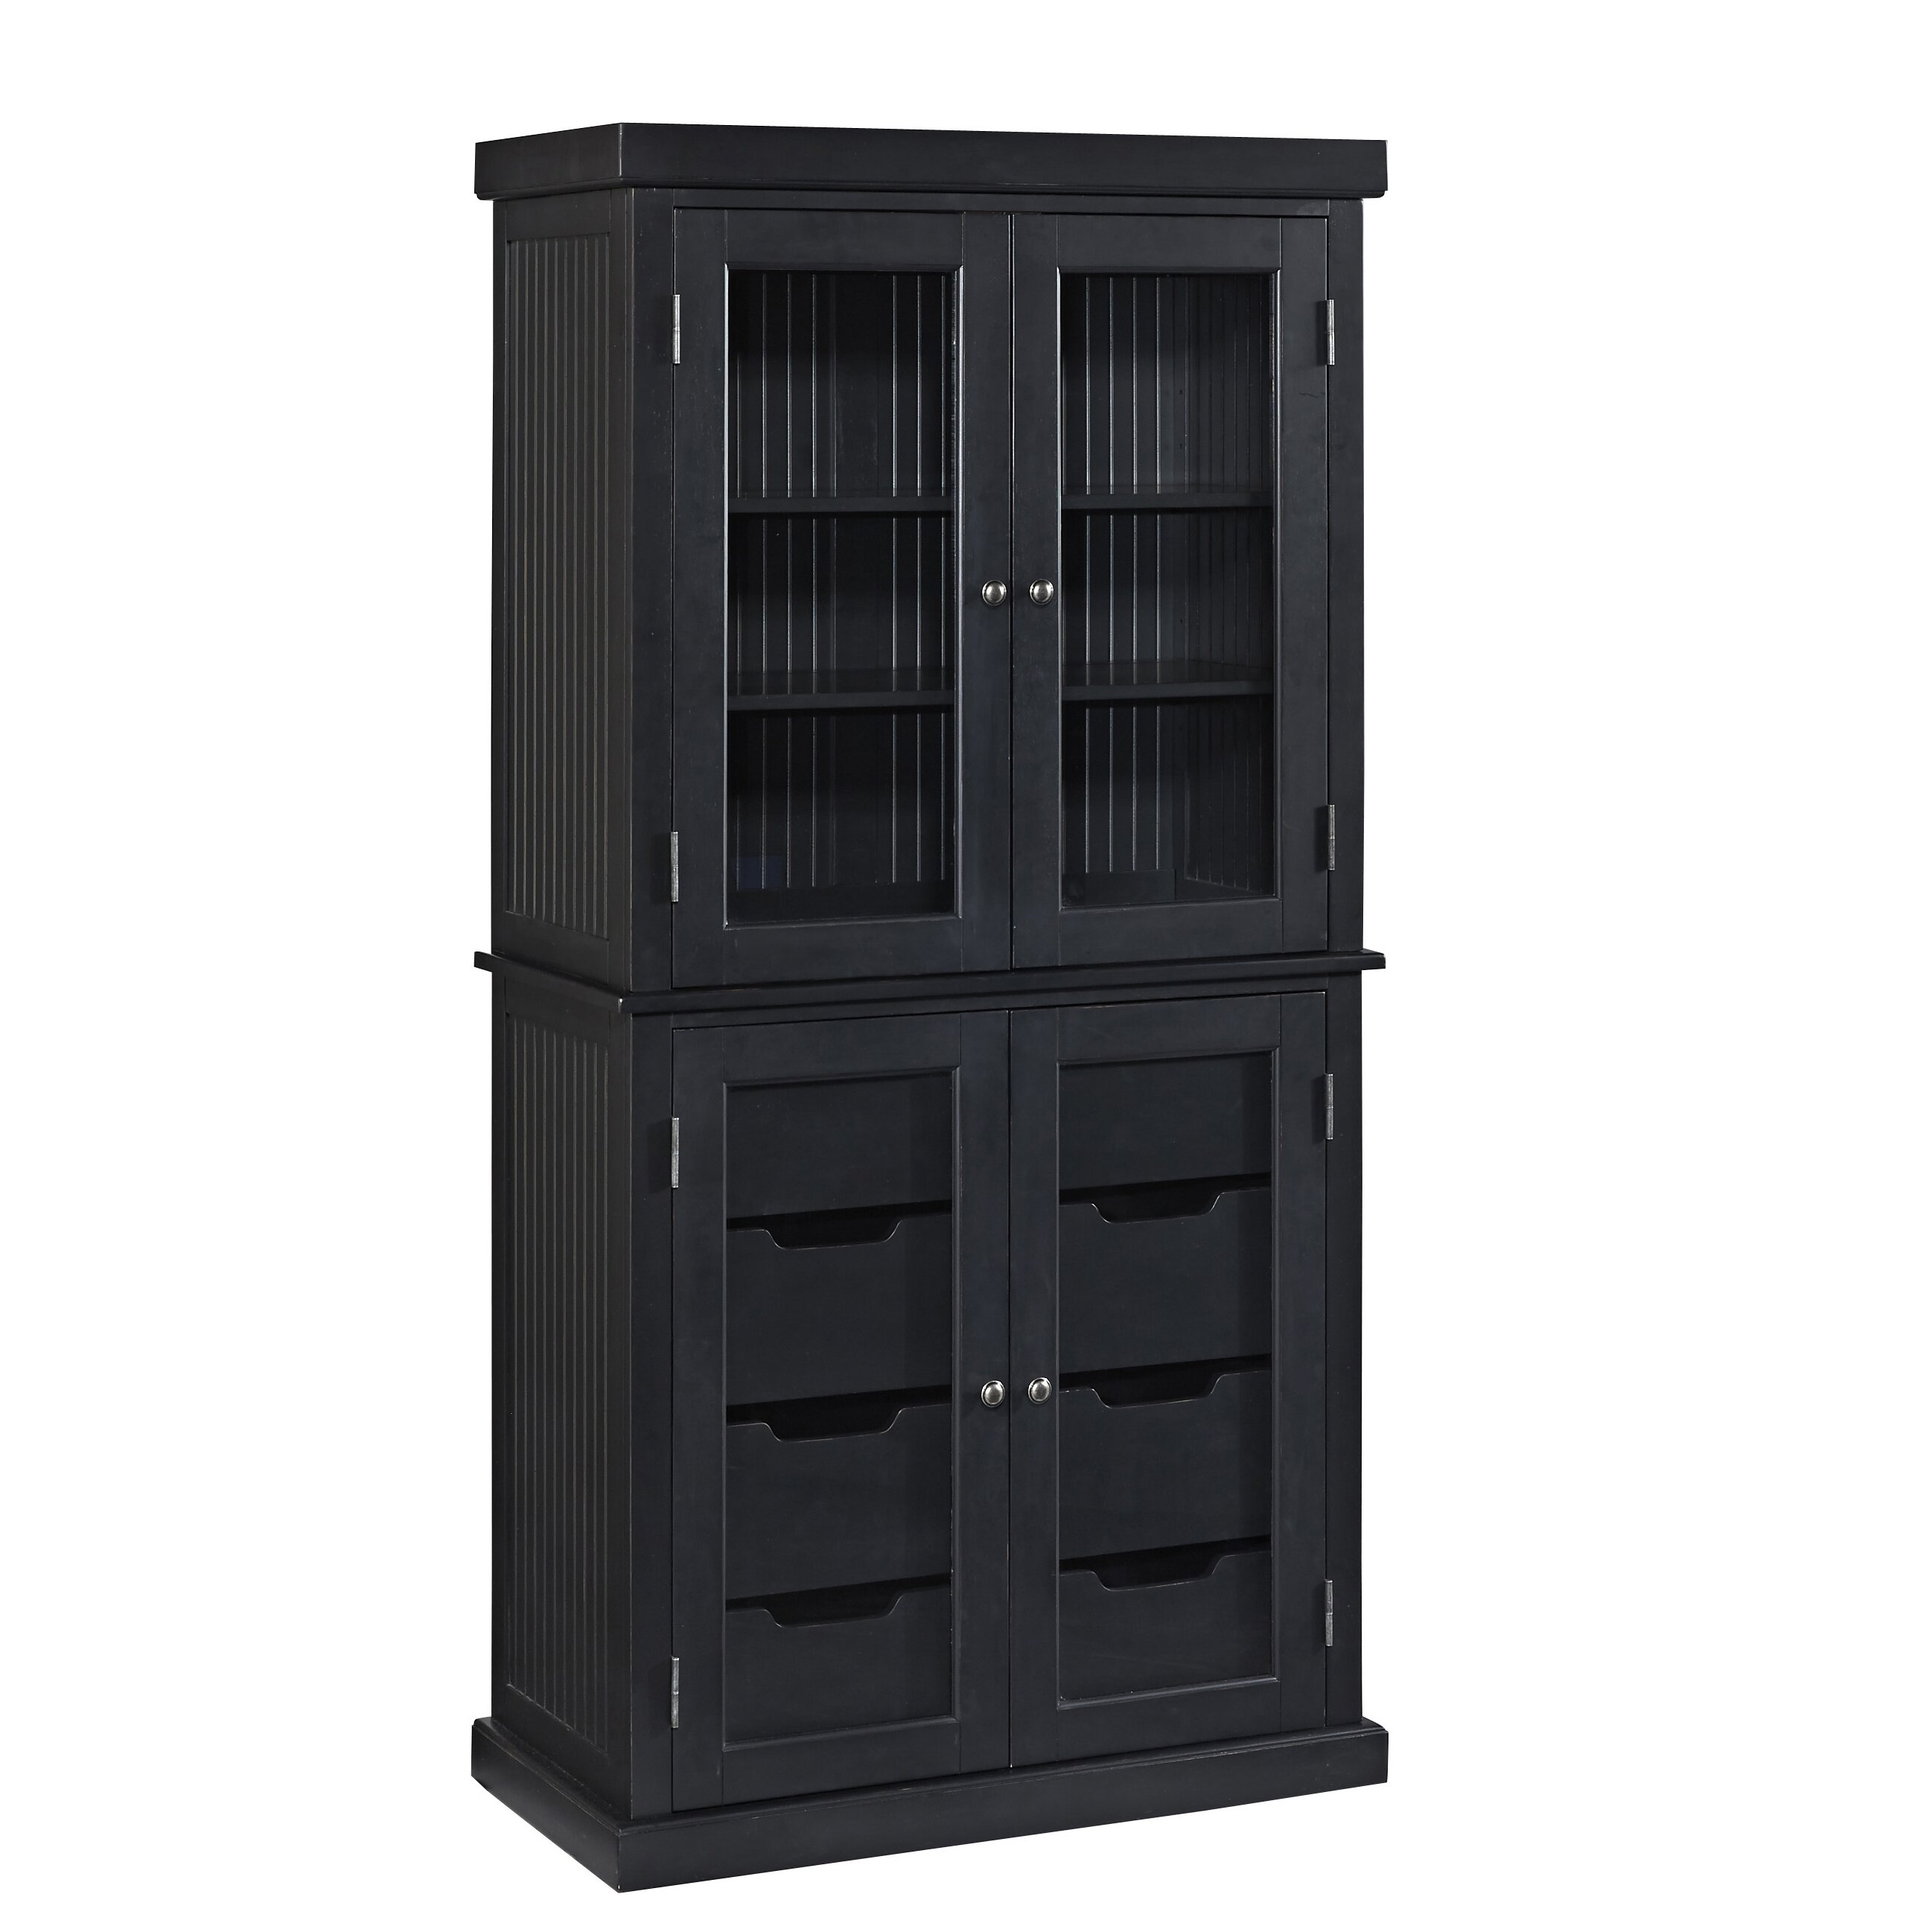 Pantry Cabinet Buy Pantry Cabinet With Pantry Cabinet For Kitchen Foter With Maple Pantry